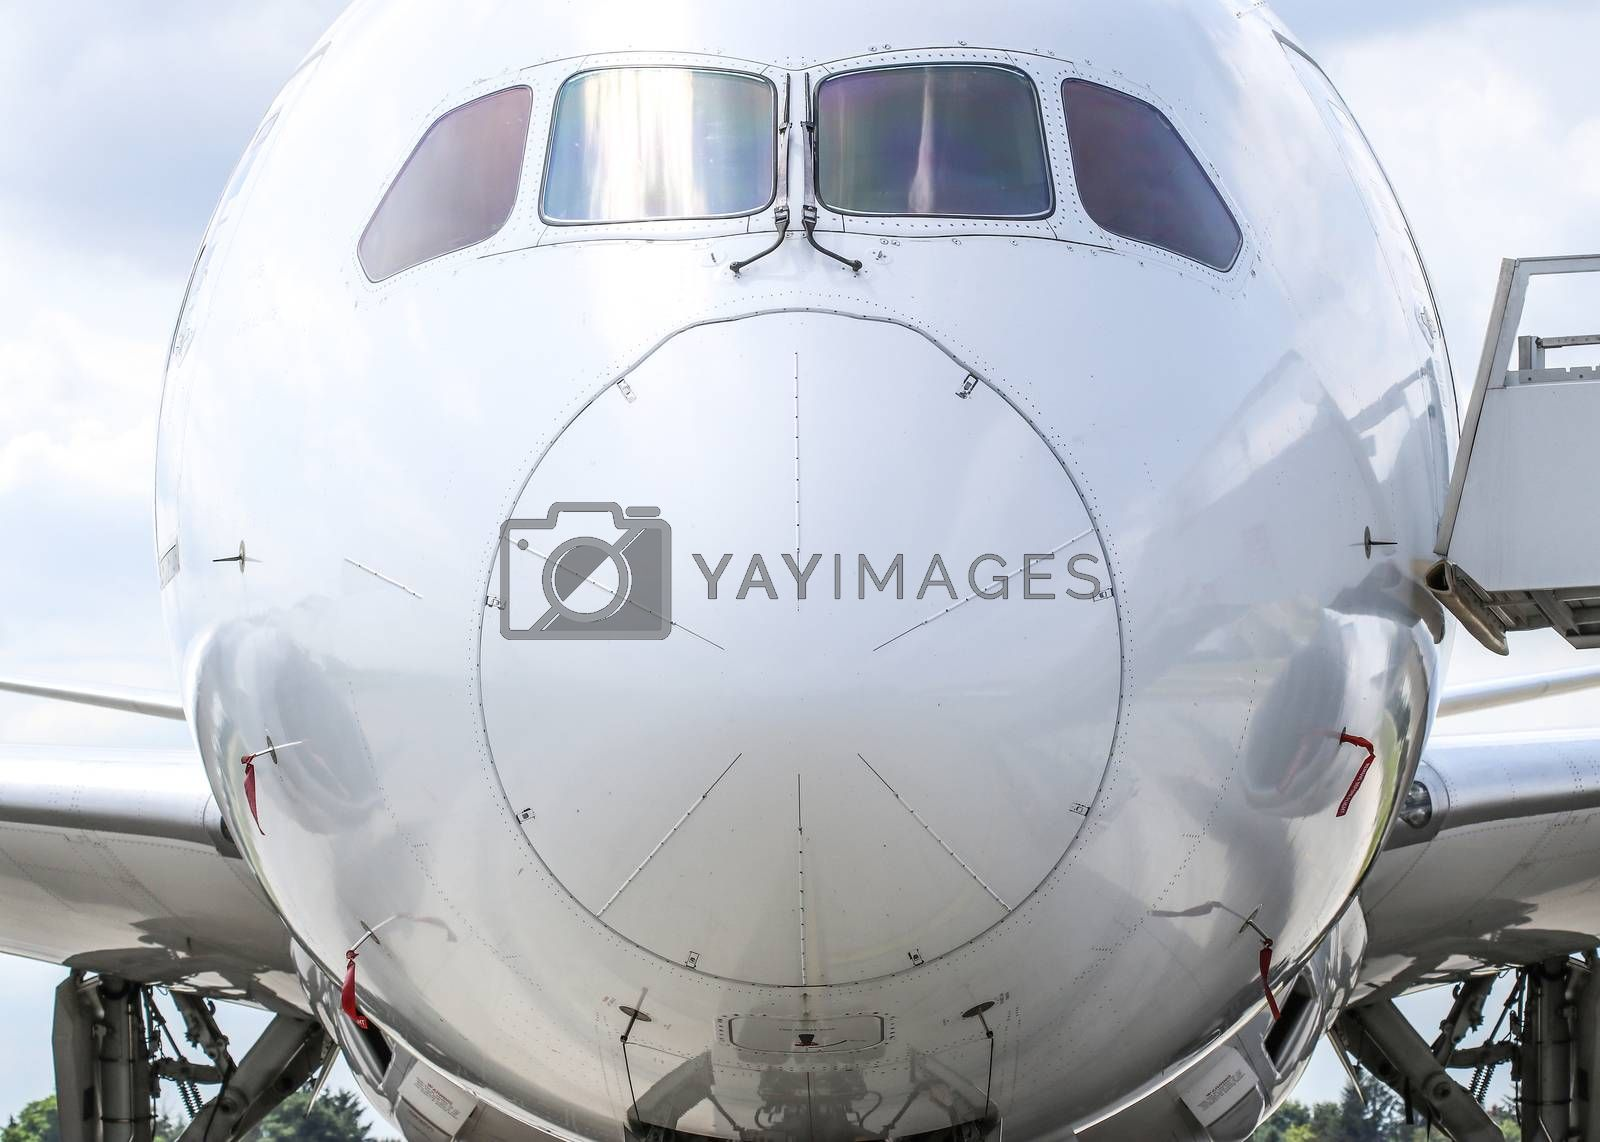 Nose and cockpit of Boeing 787-8 Dreamliner, front view